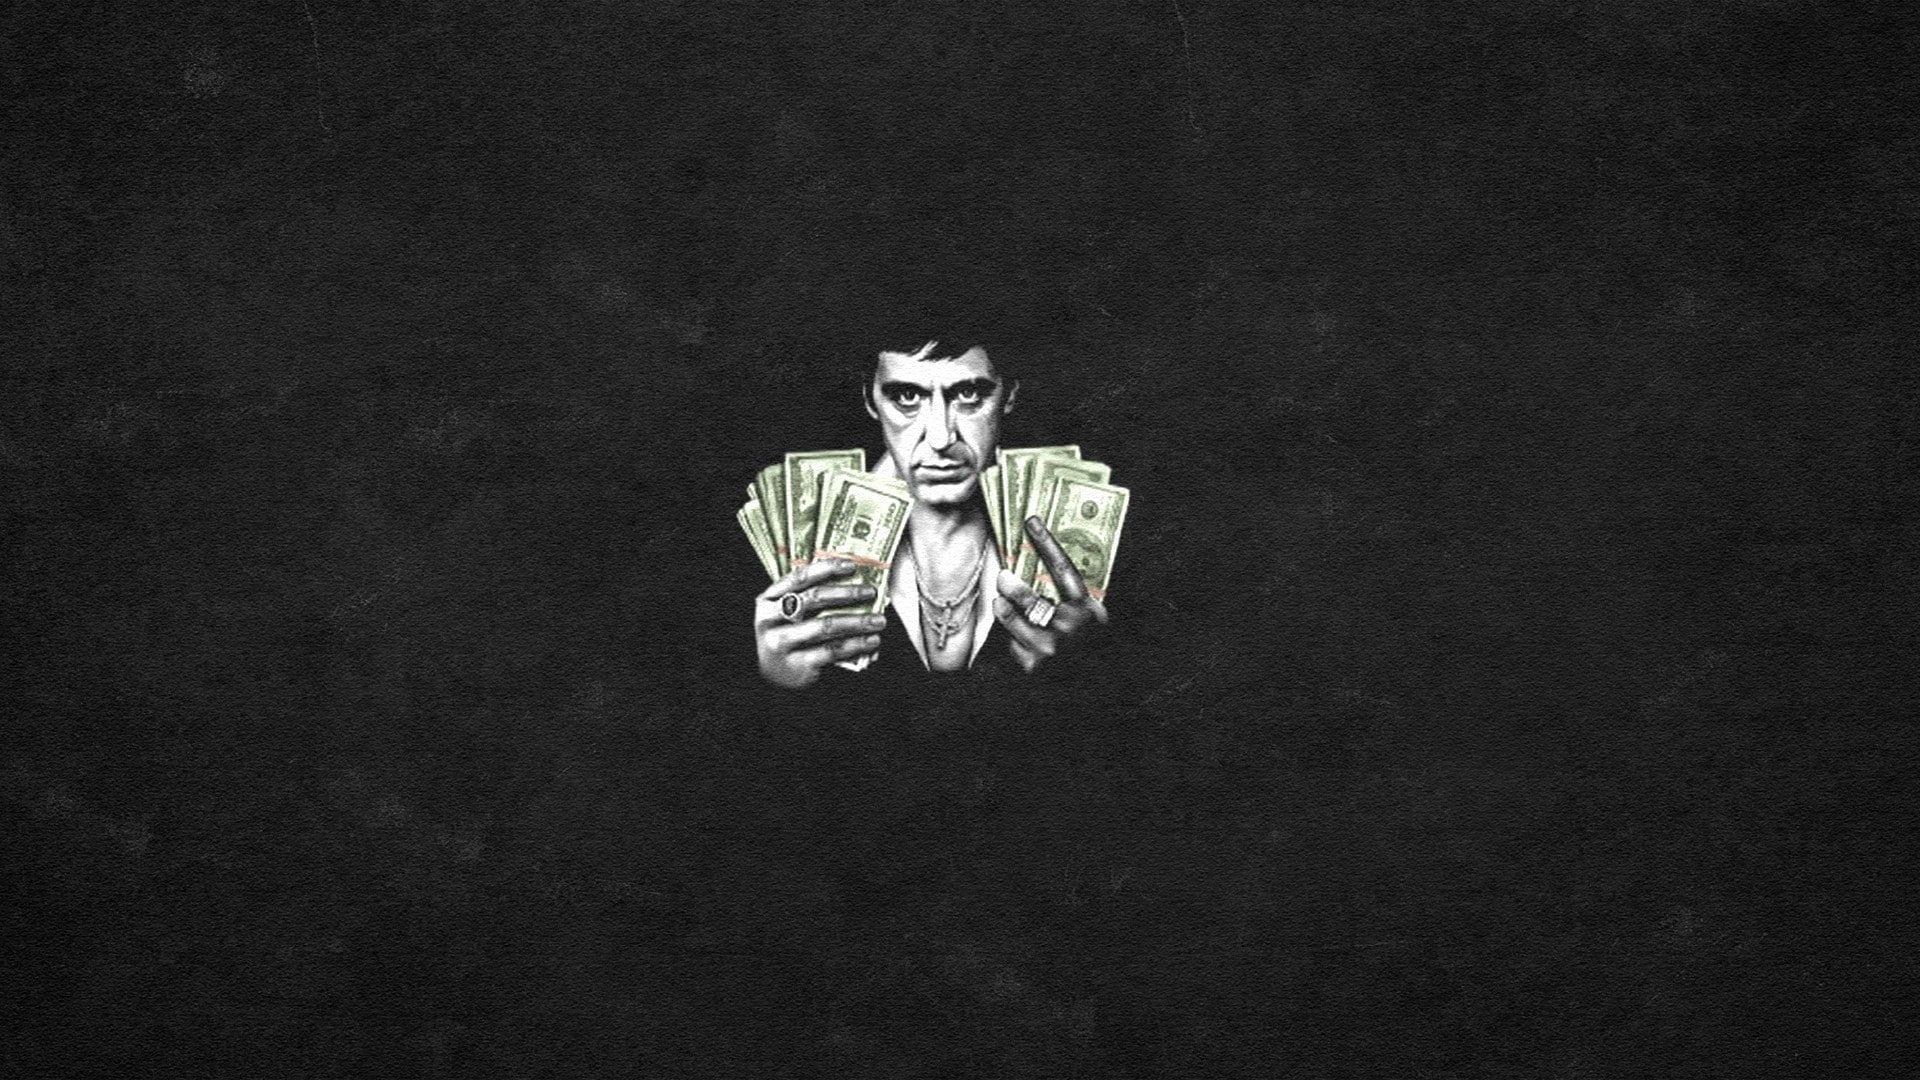 Scarface Tony Montana Al Pacino Black Background 1080p Wallpaper Hdwallpaper Desktop In 2020 Unicorn Wallpaper Cute Al Pacino Scarface